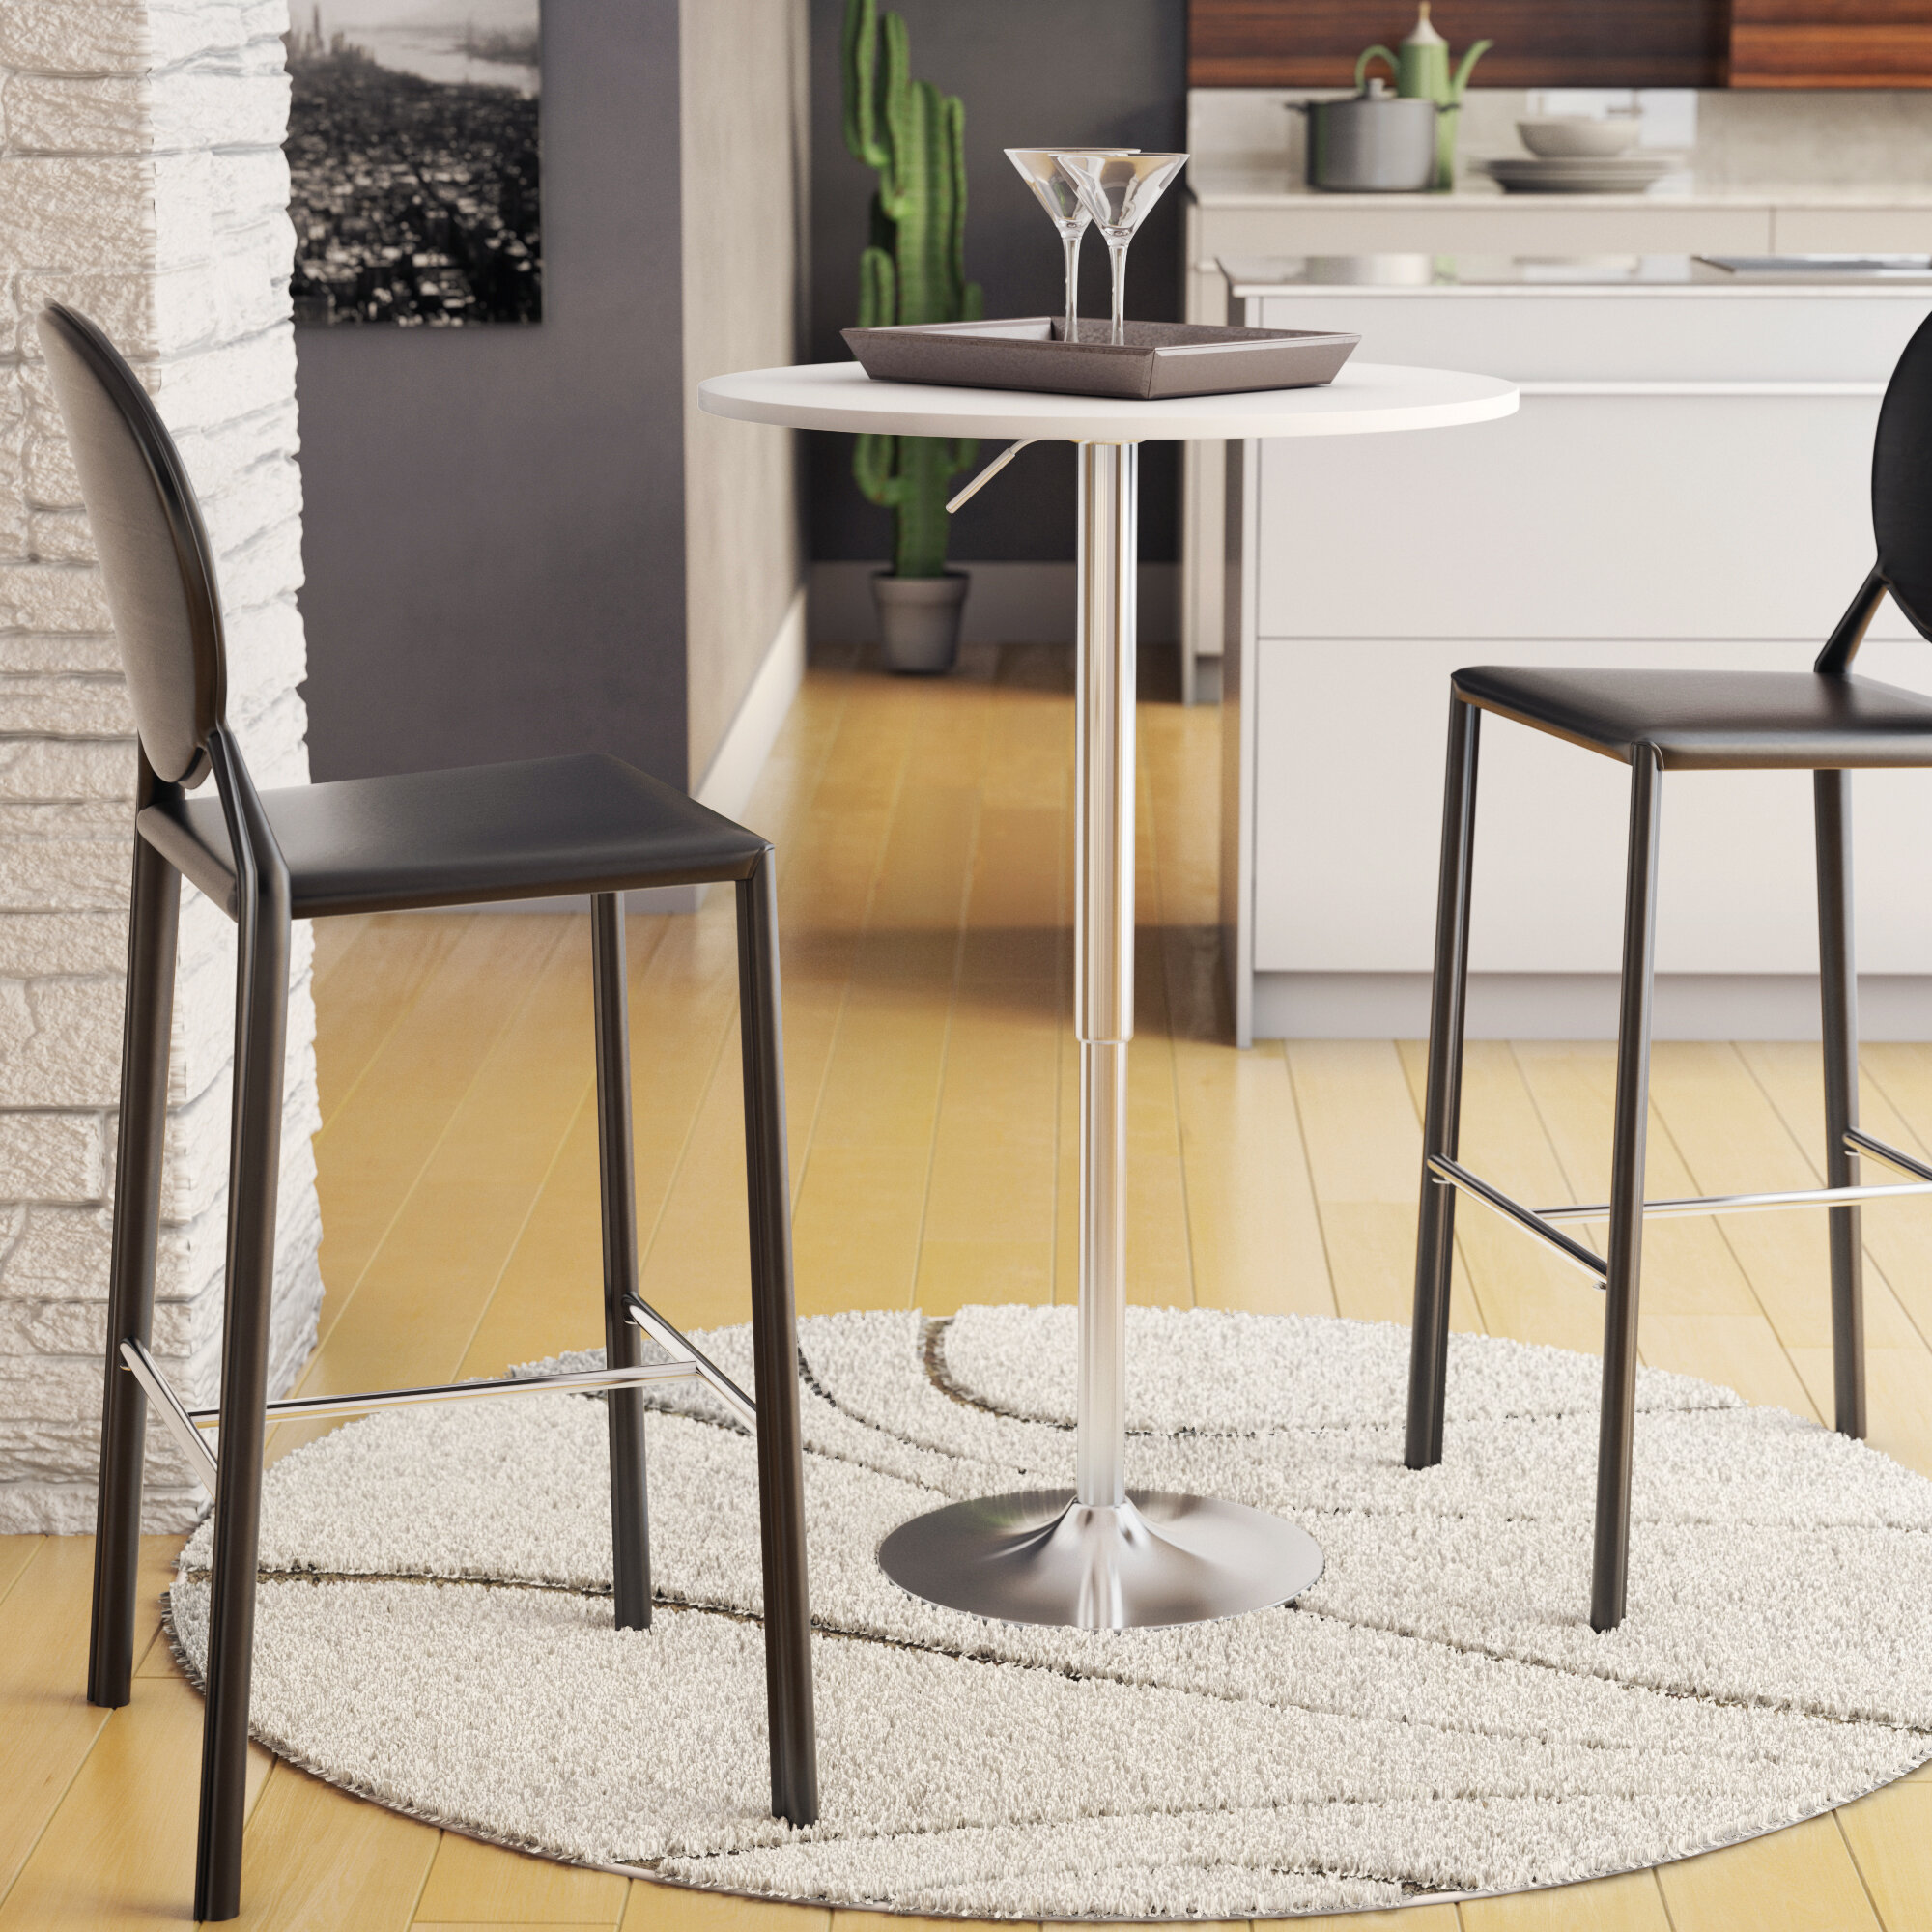 Picture of: Premium Quality Easy Assemble Adjustable Height 360 Degree Swivel Square Bar Table 2 Person Black Silver Made From Mdf And Stainless Steel Widely Use For Pub Cafe Restaurant Bar Cocktail Table